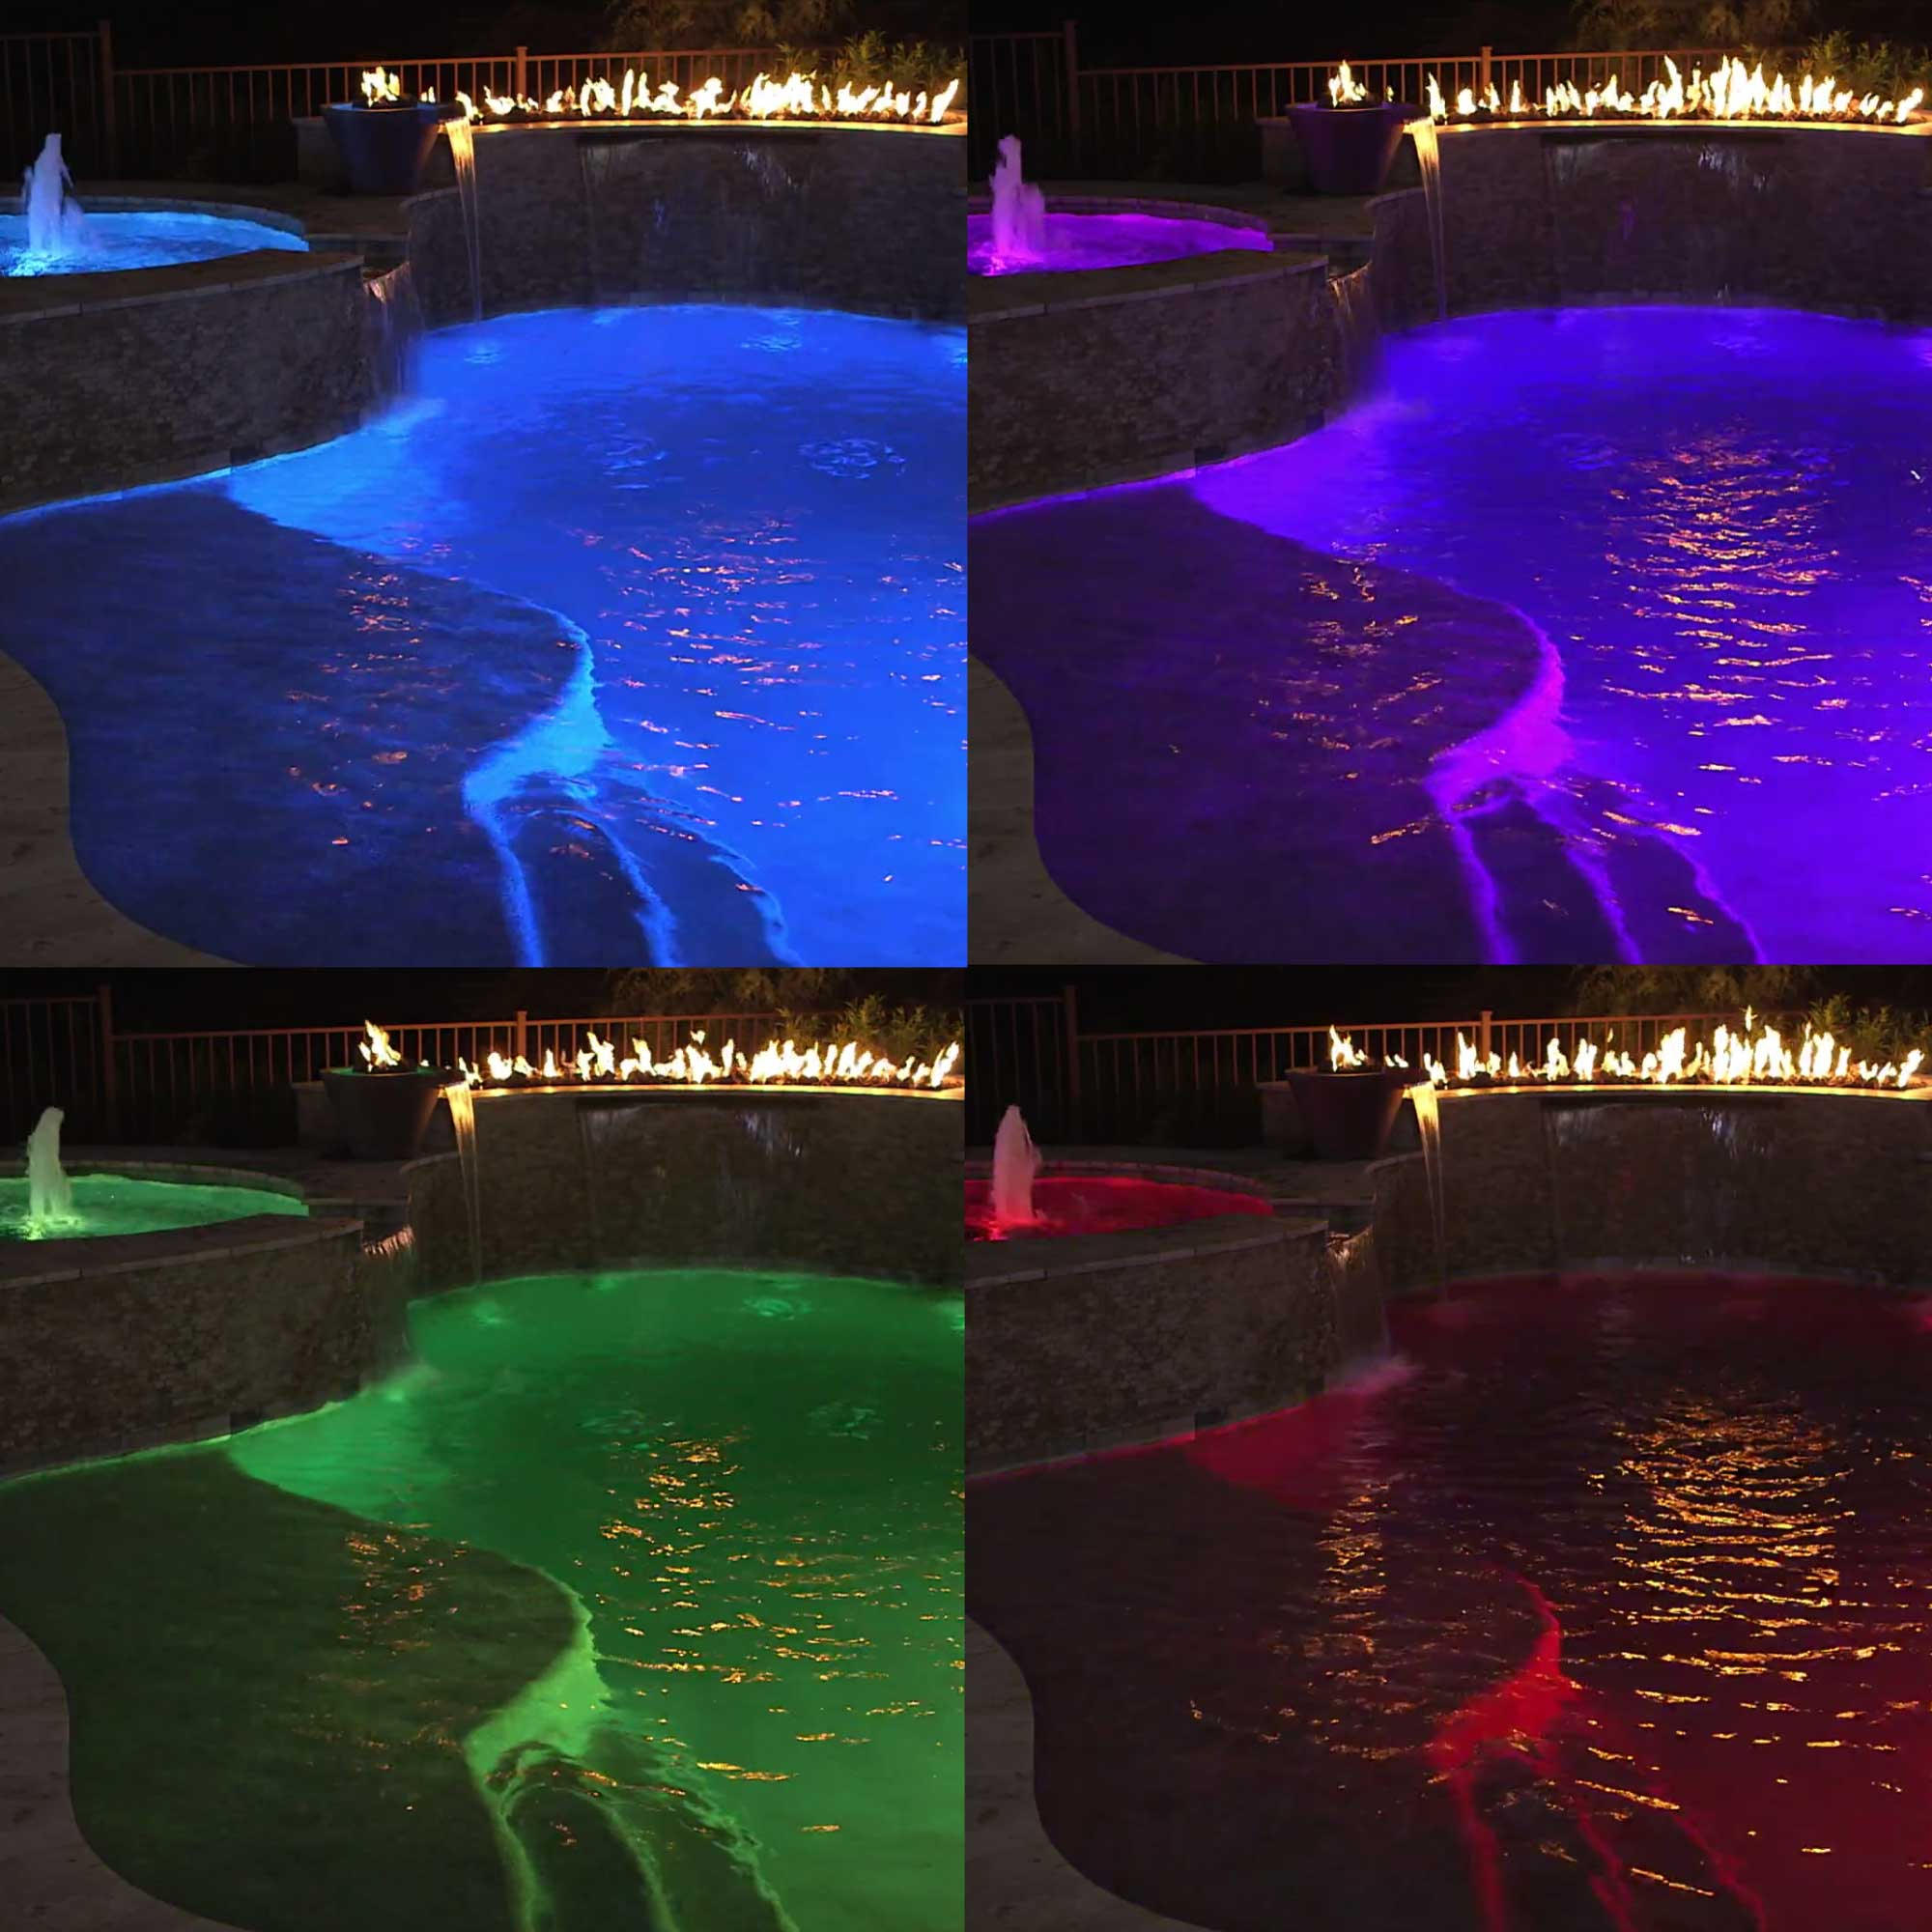 Hayward Universal ColorLogic Multi 12V 10 Color LED Pool Light with 50 Ft Cord - image 4 of 5